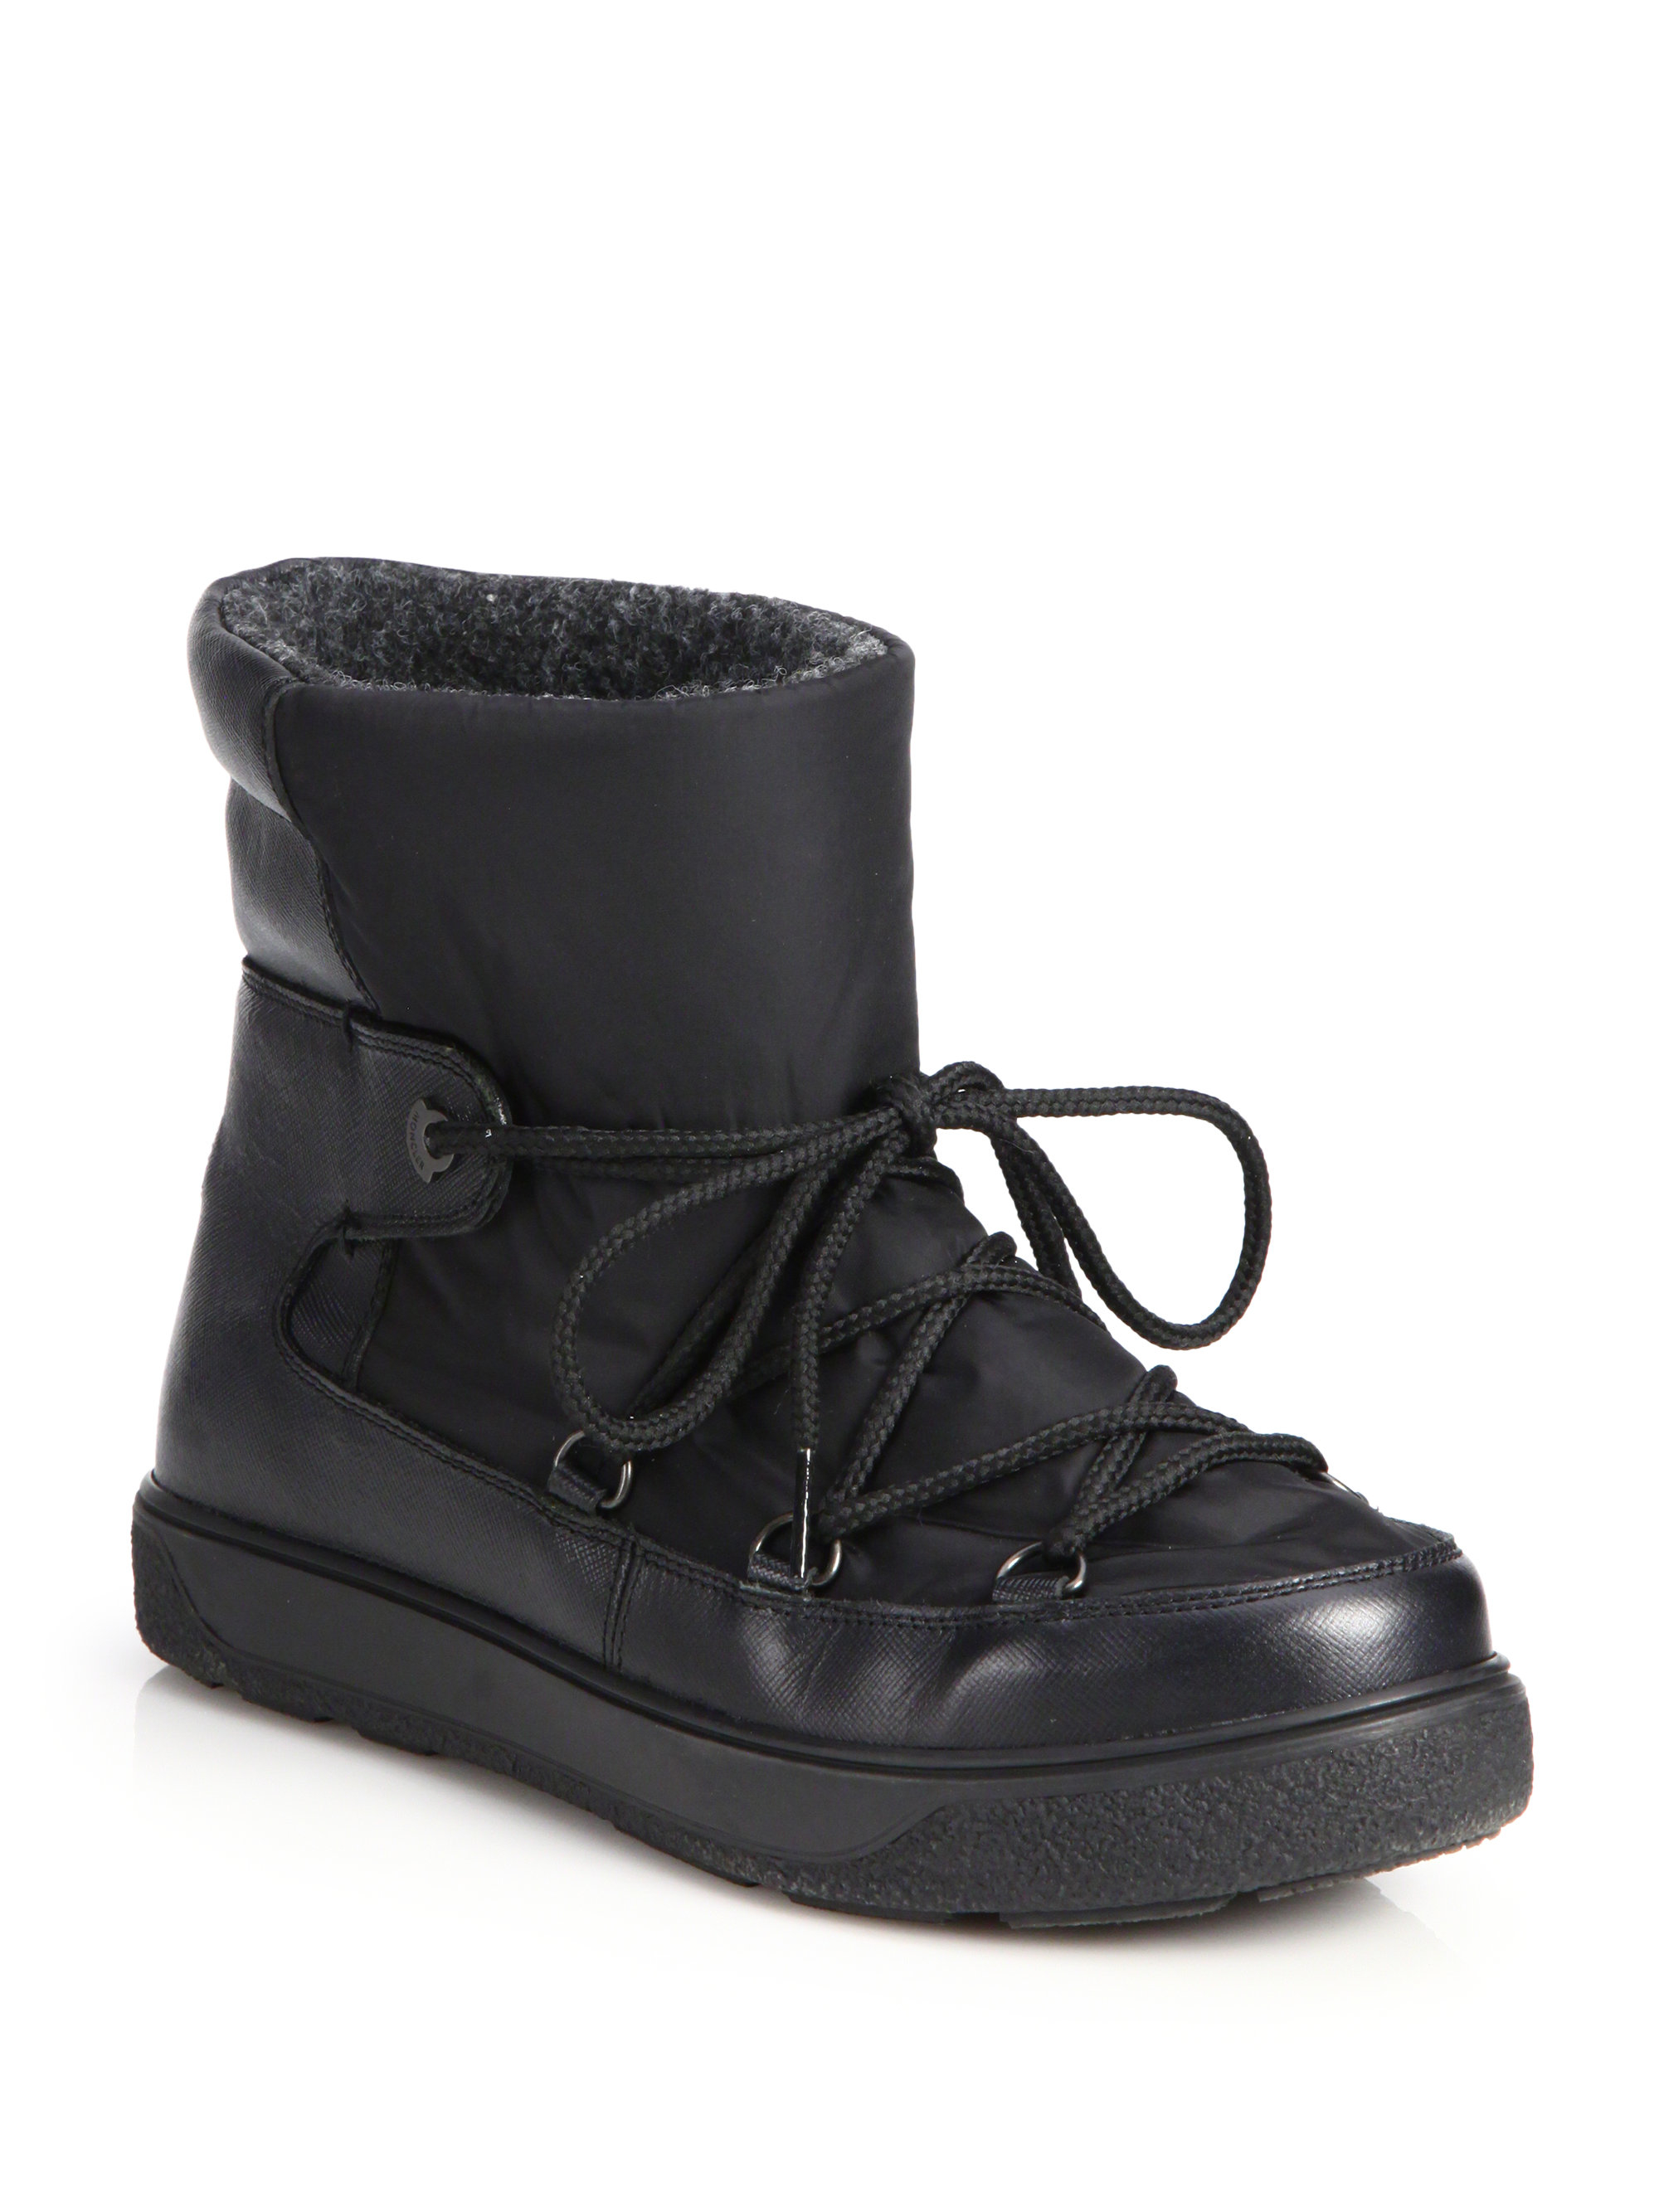 moncler boot sizing